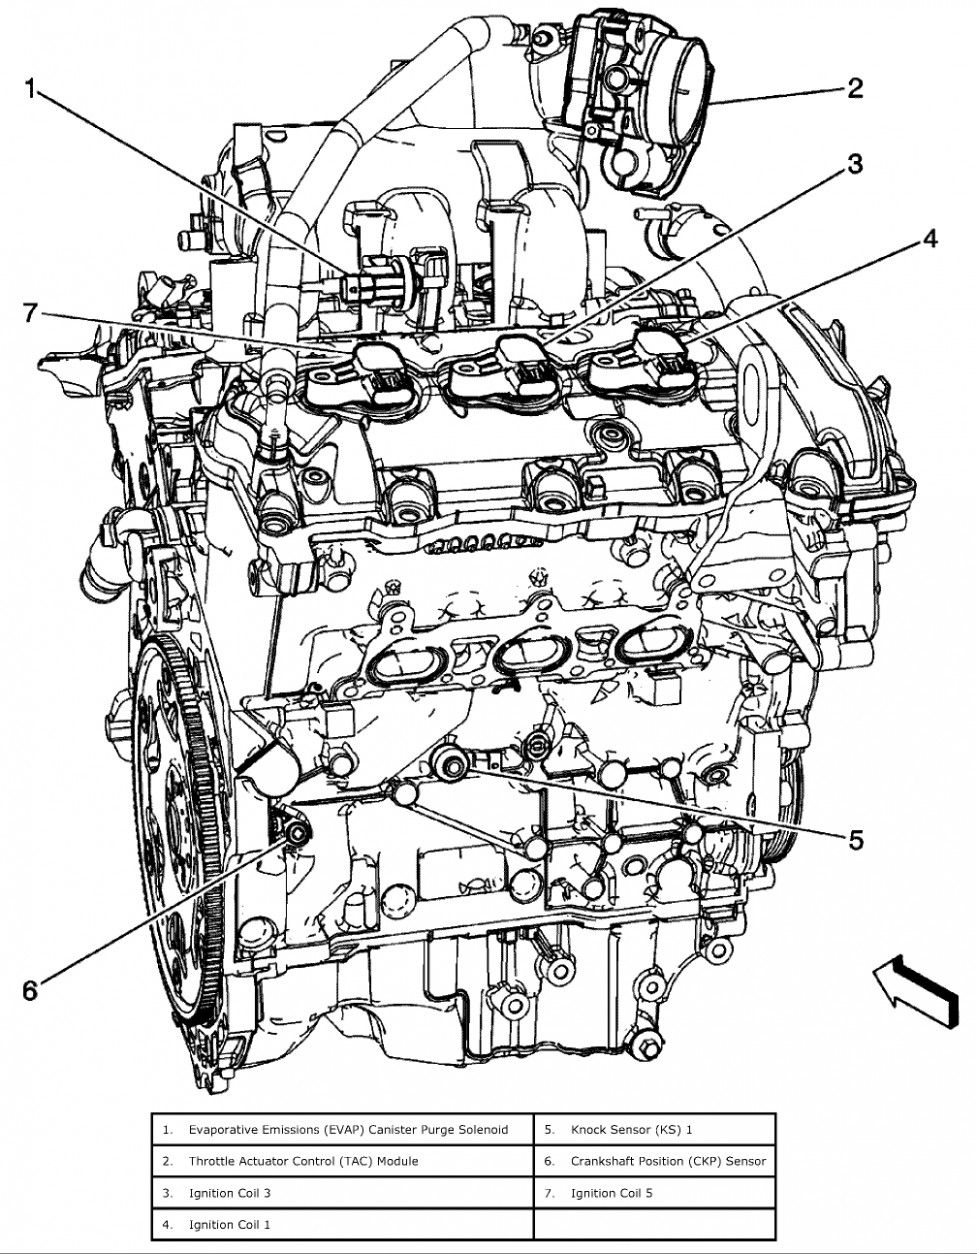 Engine Diagram 4 Suzuki Xl4 Engine Engine Diagram 4 Suzuki